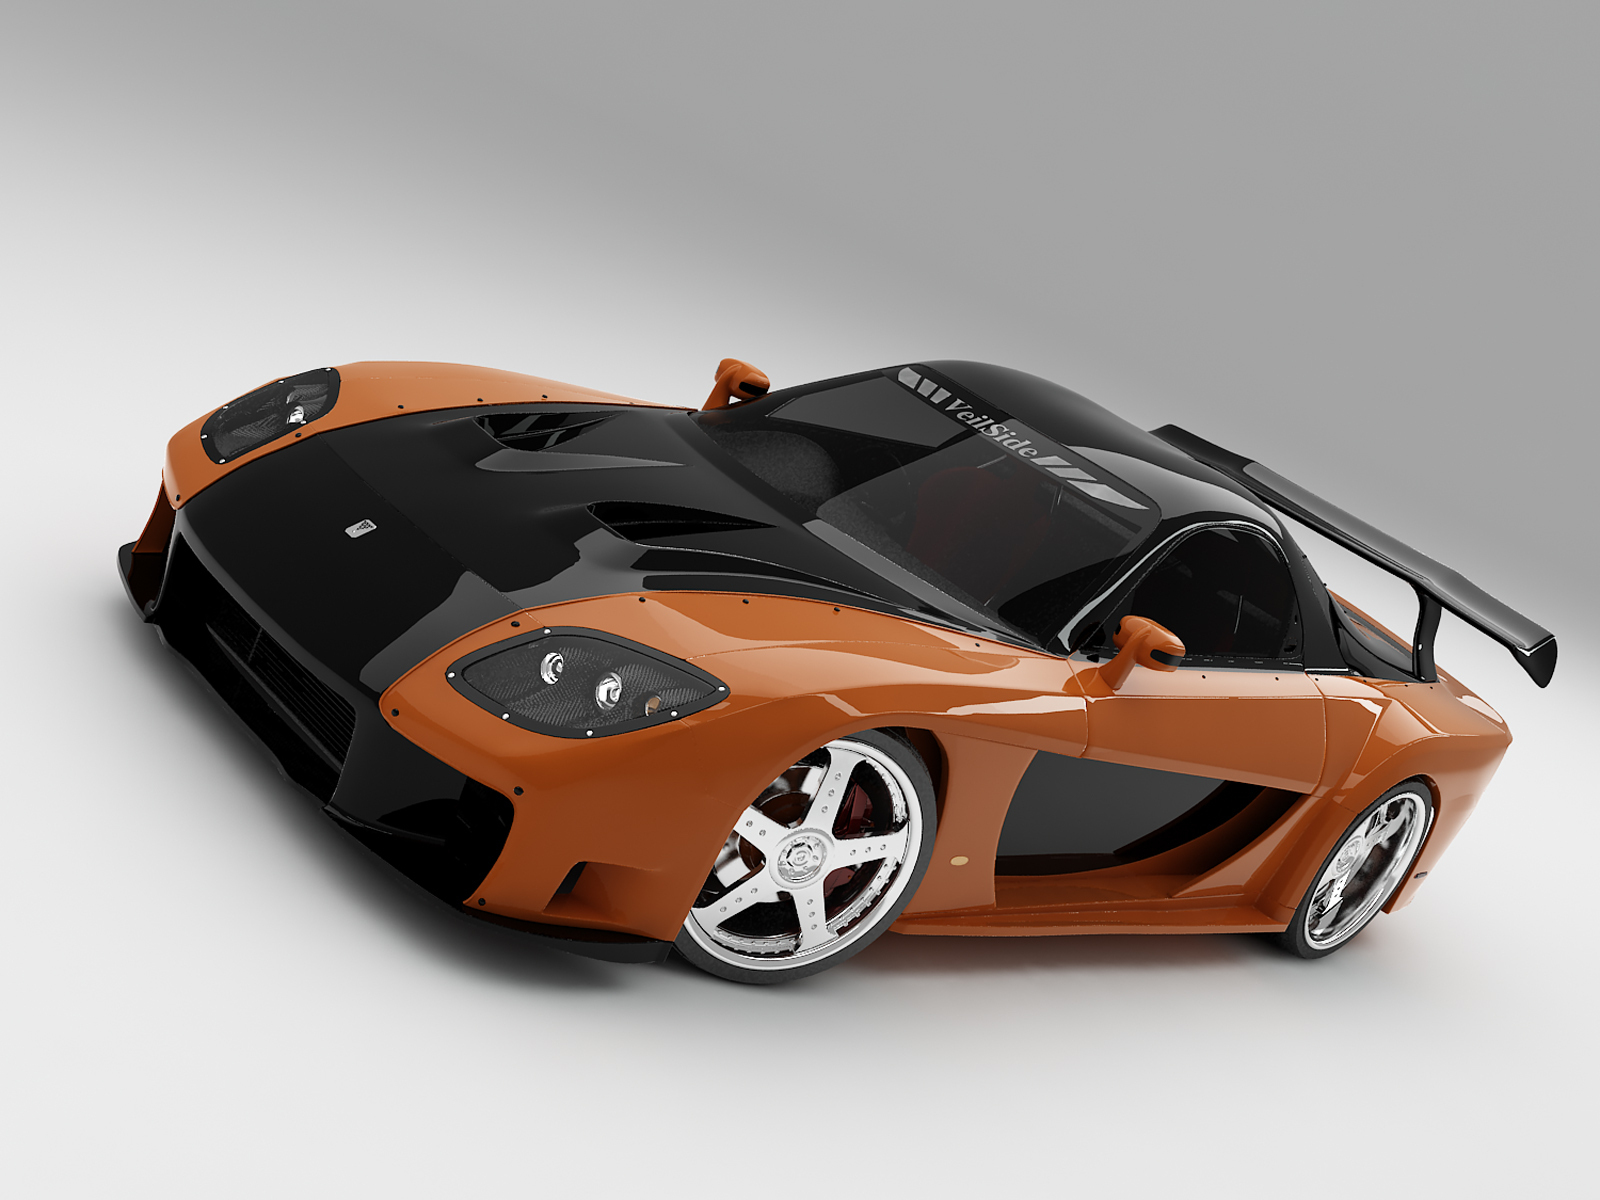 Low Cost Vehicle Insurance Coverage Sports Cars How To Get It As - Low cost sports cars